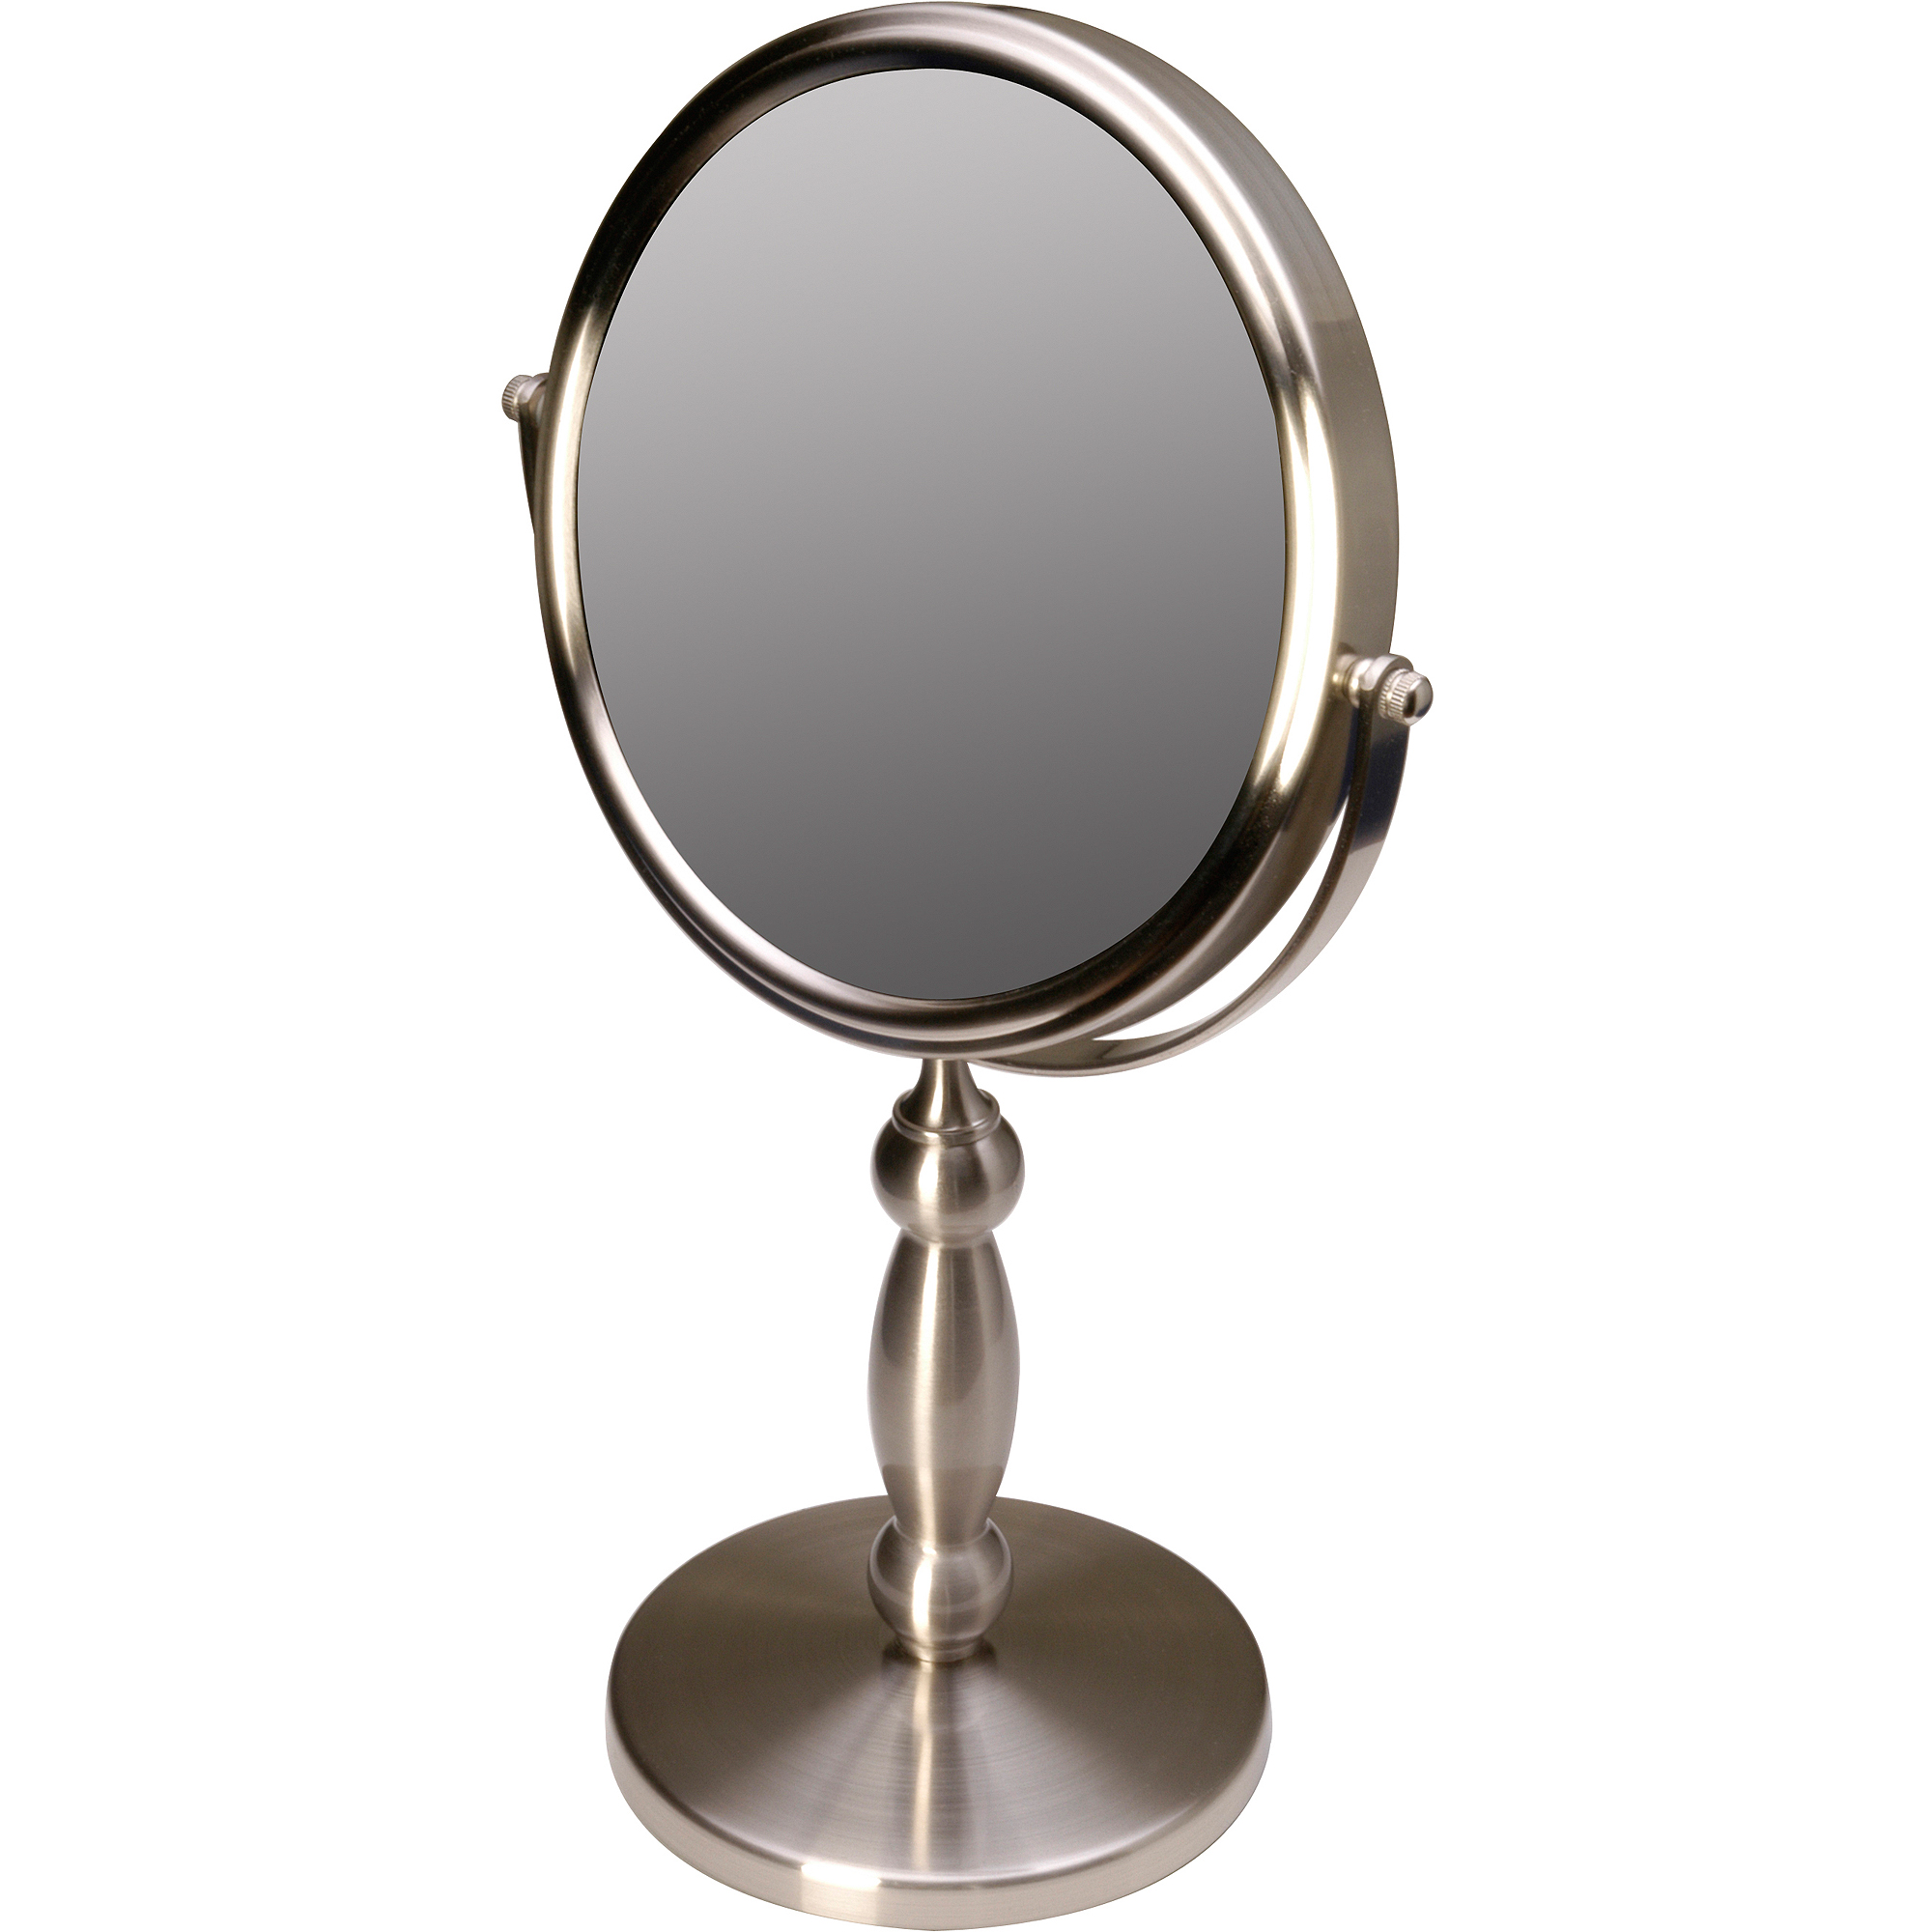 Marvellous conair makeup mirror for furniture accessories ideas with conair double-sided lighted makeup mirror